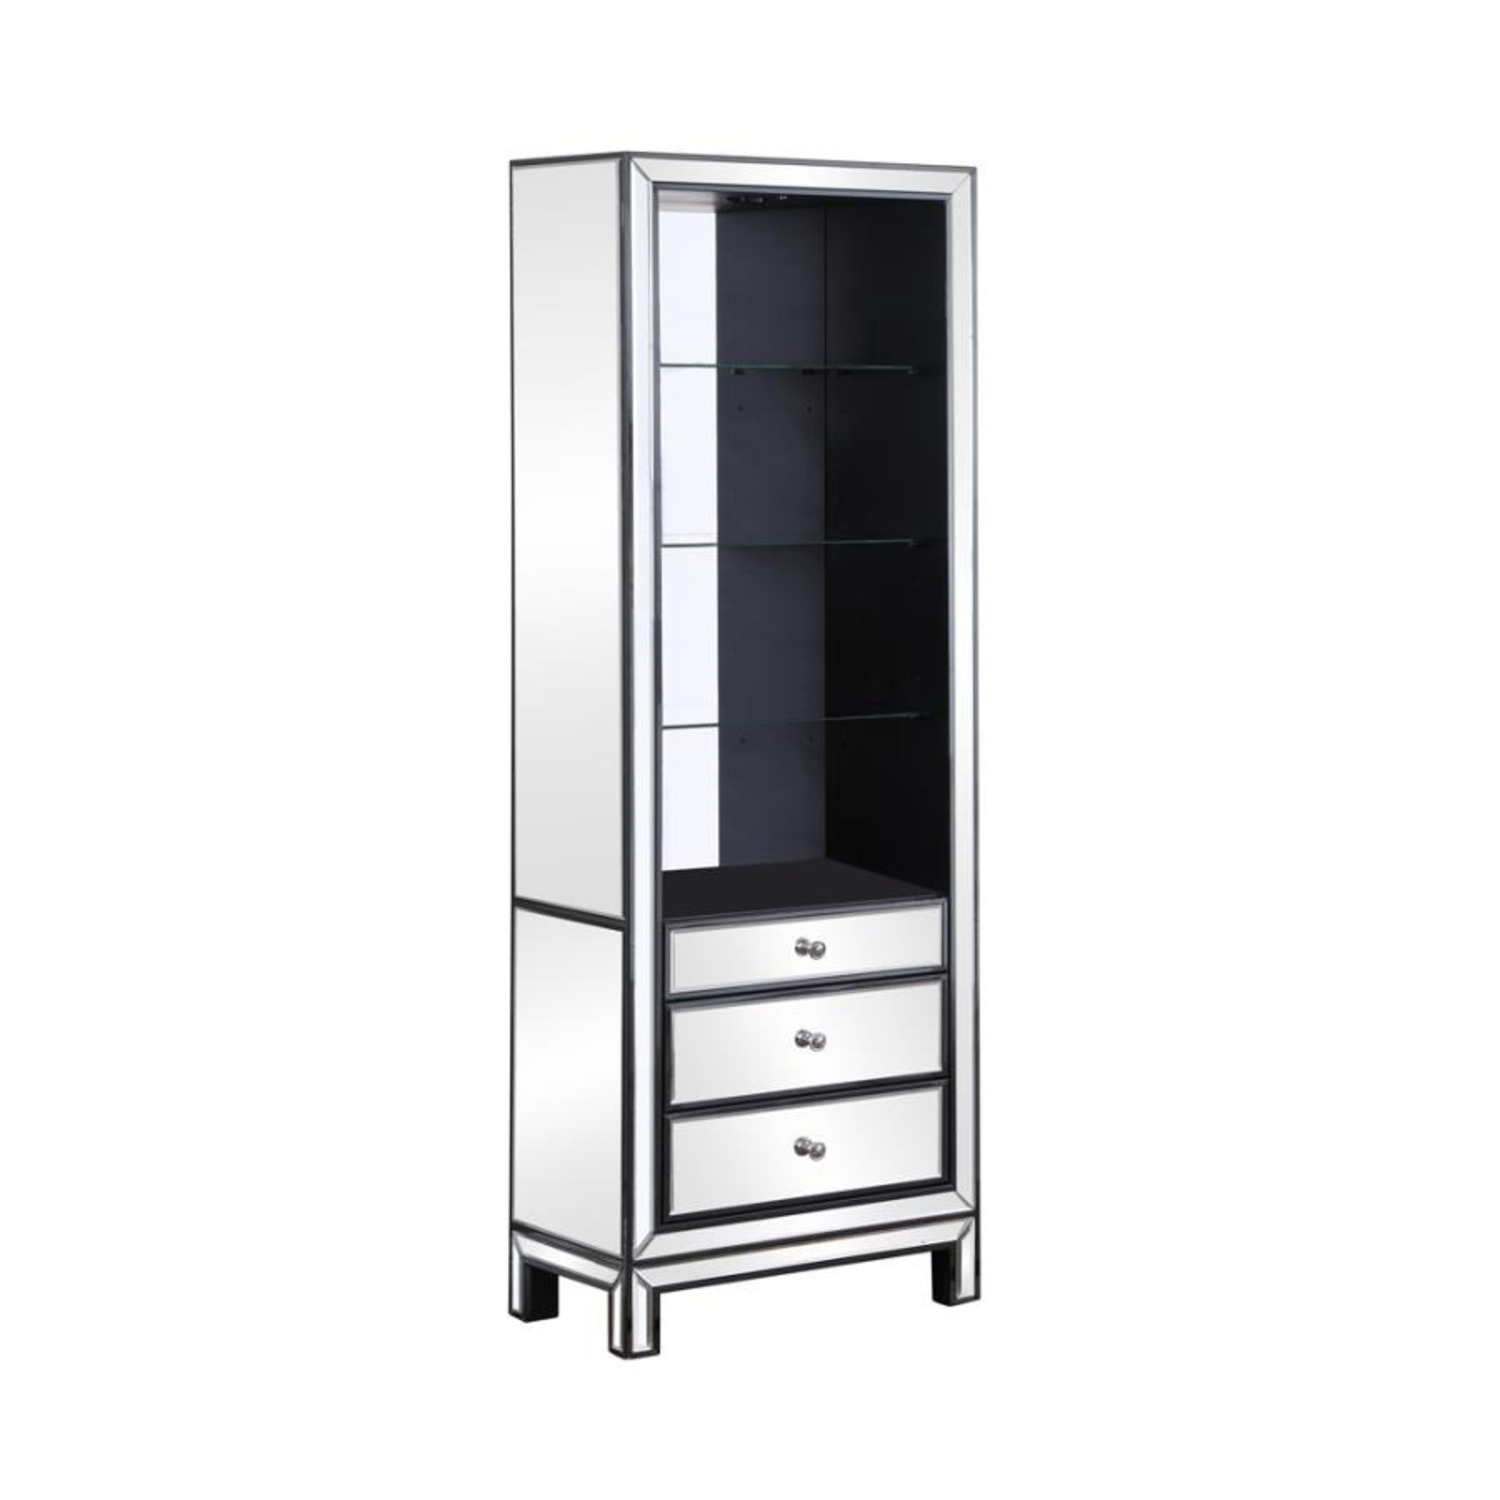 Media Tower W/ Glass Shelves In Silver Finish - image-1